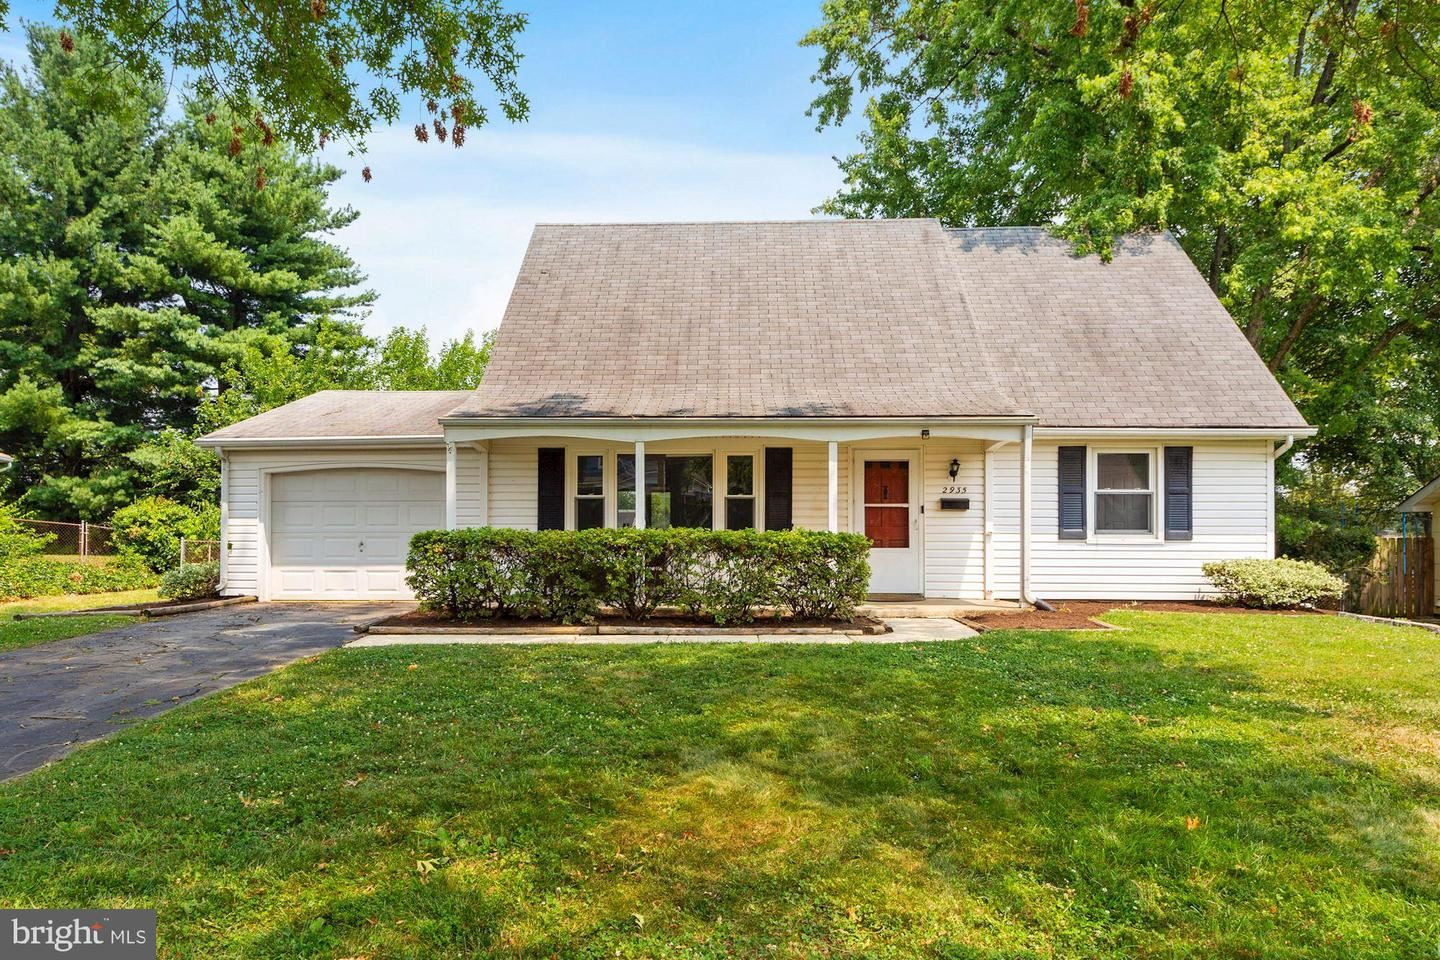 Photo for 2935 TALLOW LN, BOWIE, MD 20715 (MLS # MDPG2003626)